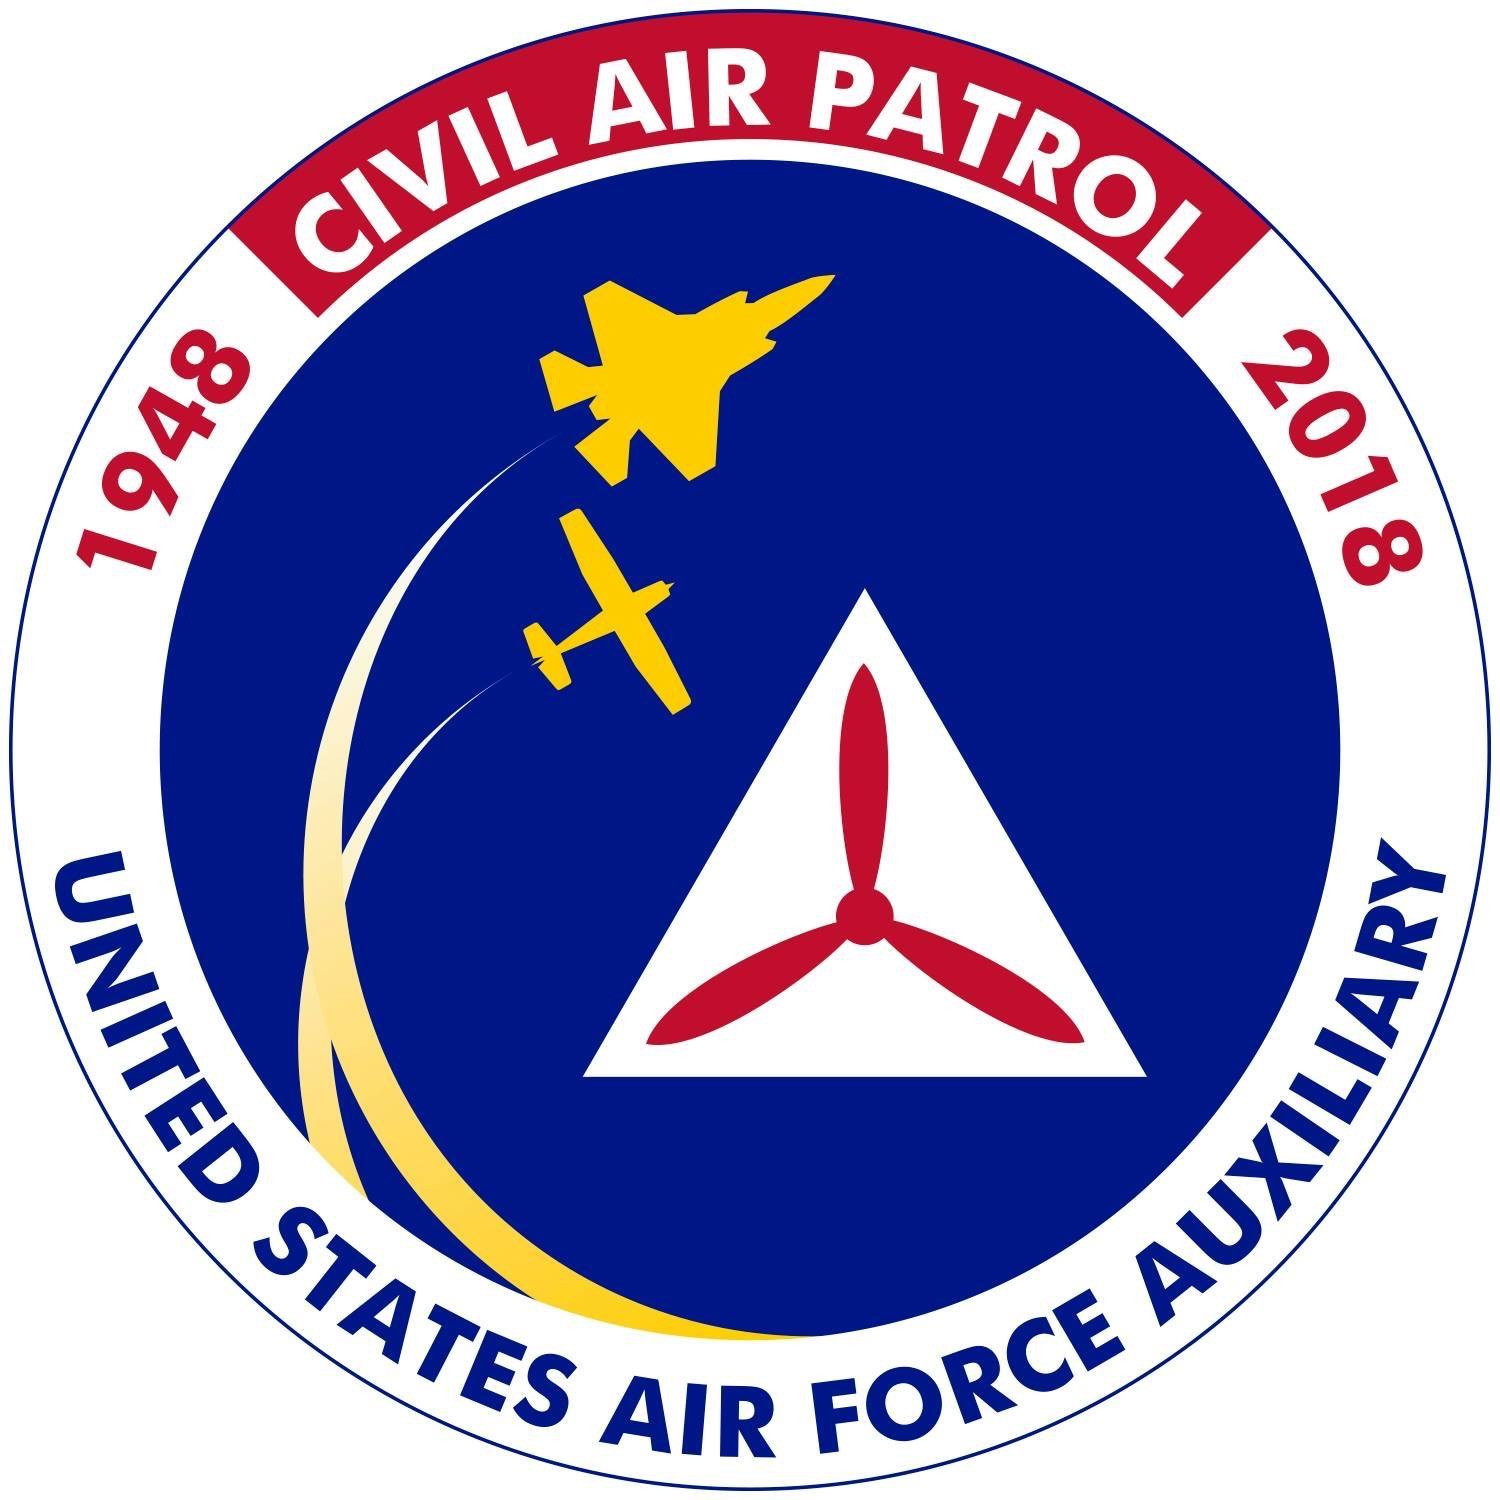 The  Civil Air Patrol  will be out on the front lines, marshaling, parking aircraft, and greeting pilots. They will also have a booth where they'll be demonstrating STEM program projects (really fun science kits where you building exciting stuff, made for schools). Did you know that they assist in search and rescue of downed aircraft? Find out more and join up! It's a great way to launch an aviation career too.